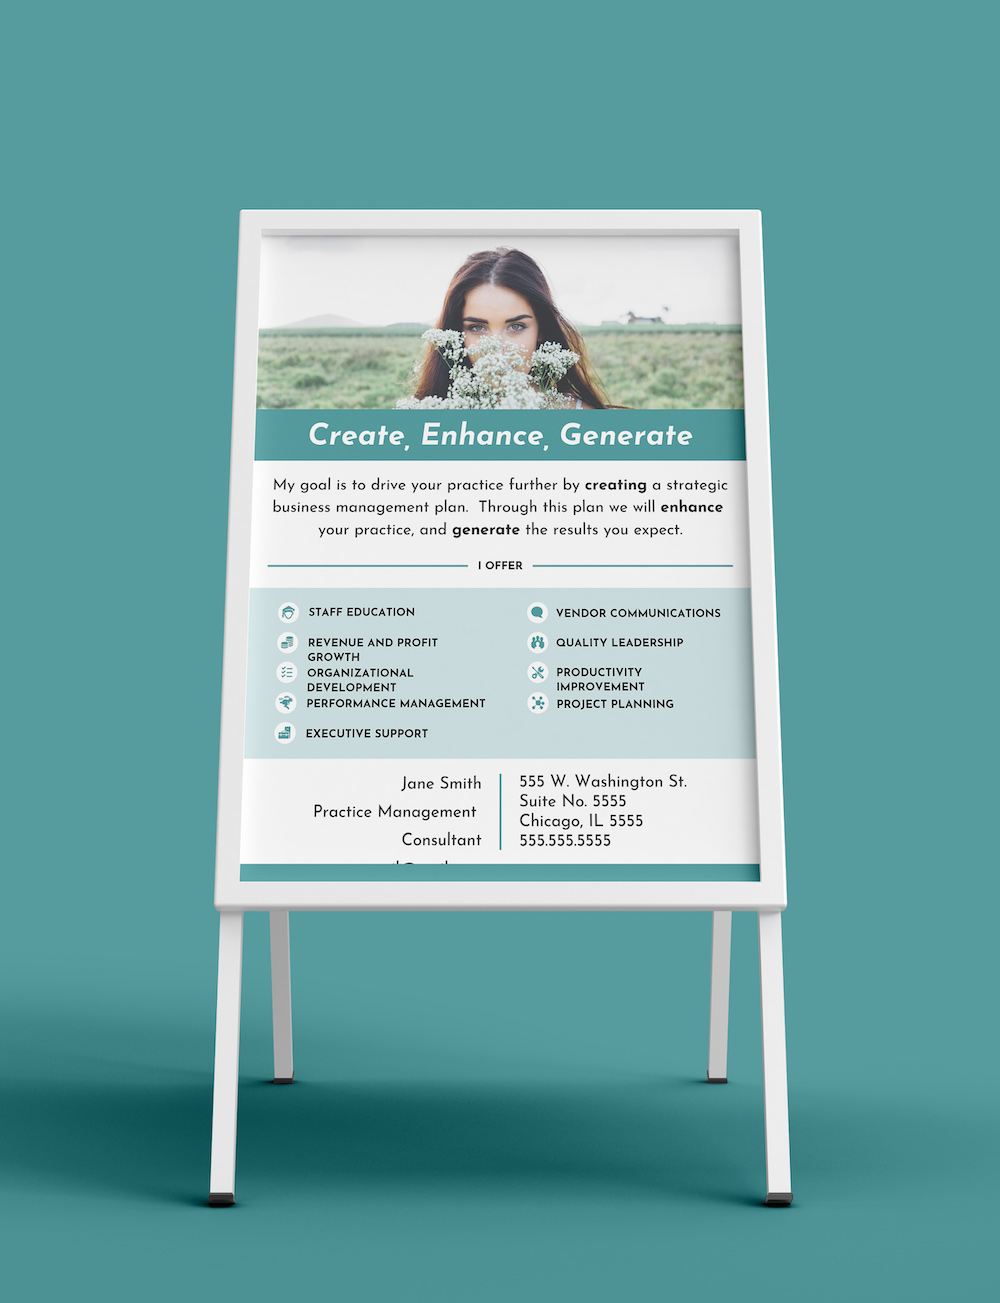 Marketing Printable Product Flyer Template